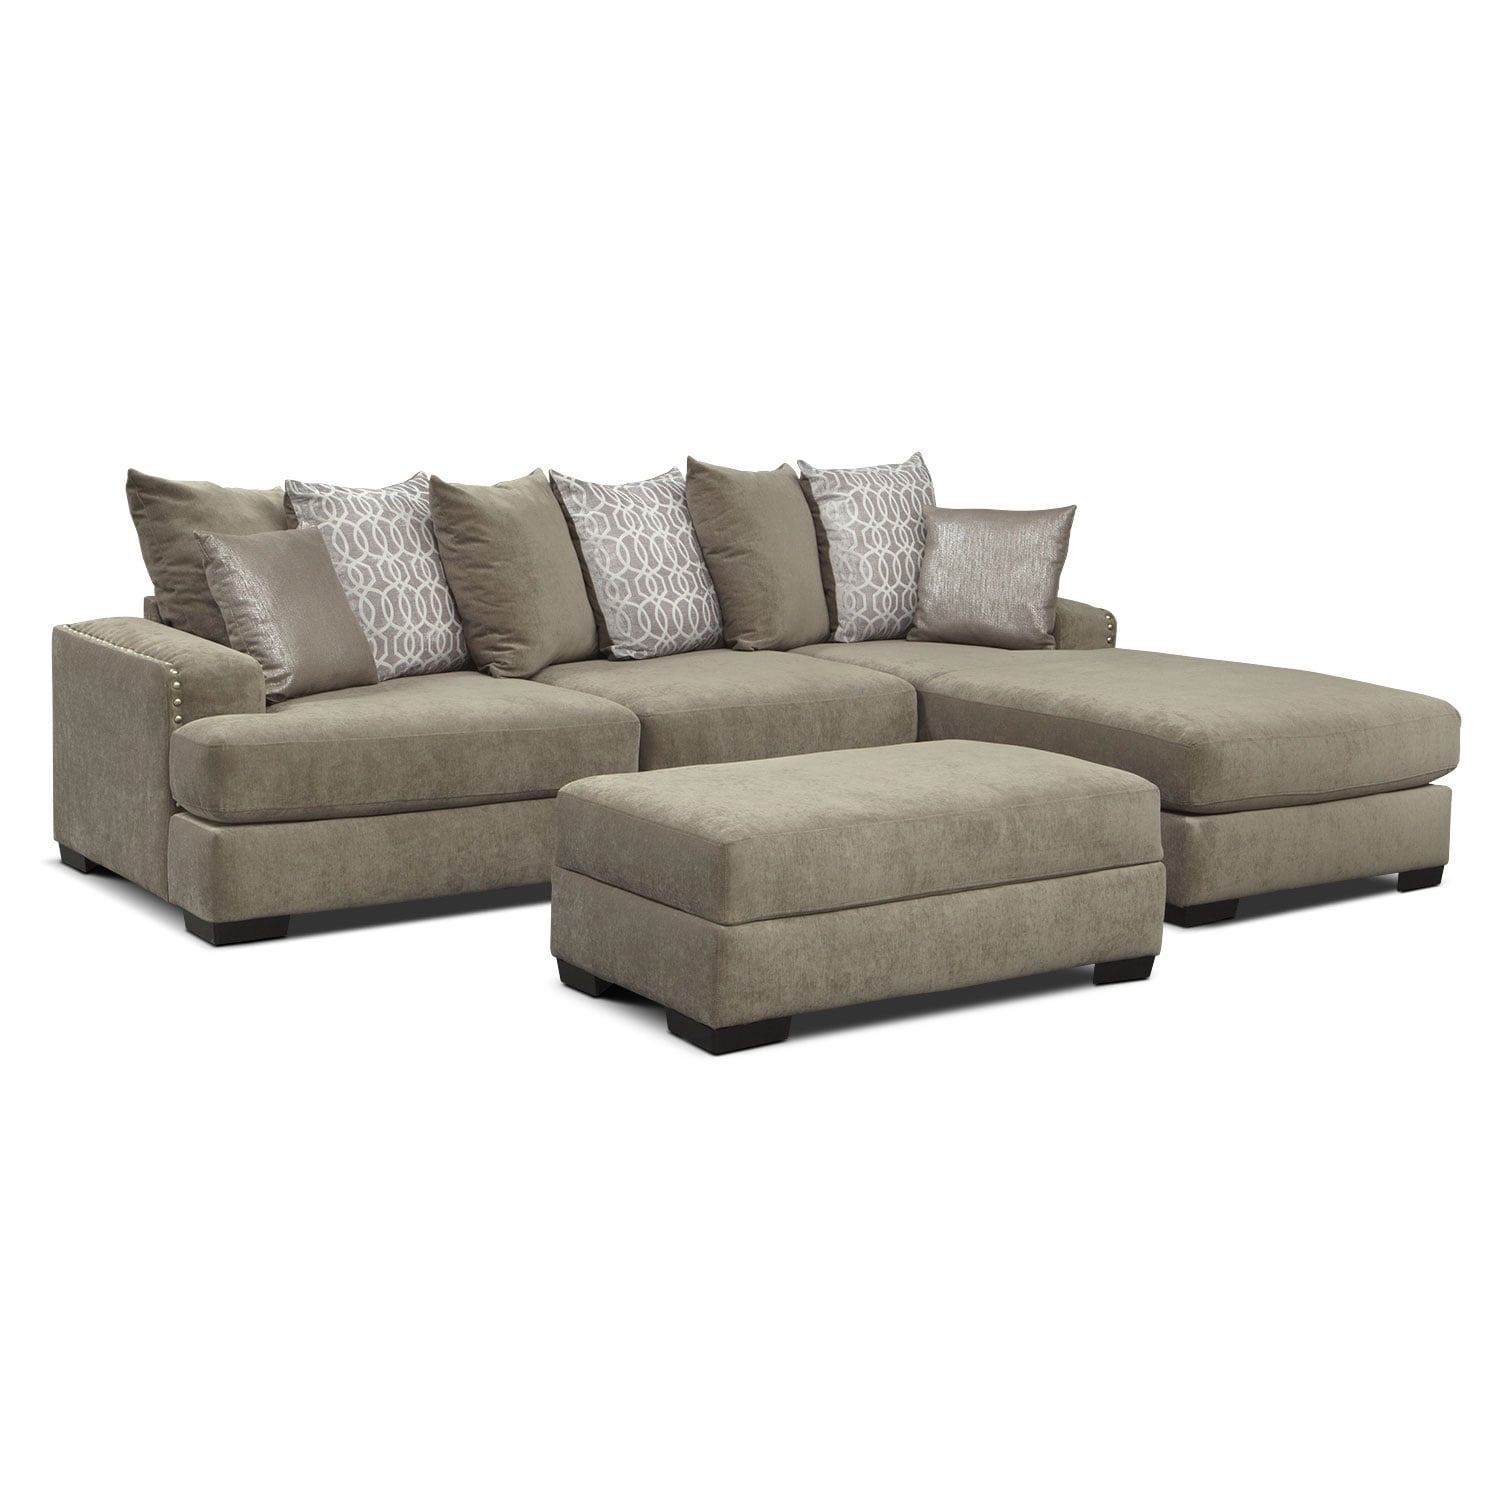 the tempo sectional collection - platinum | value city furniture